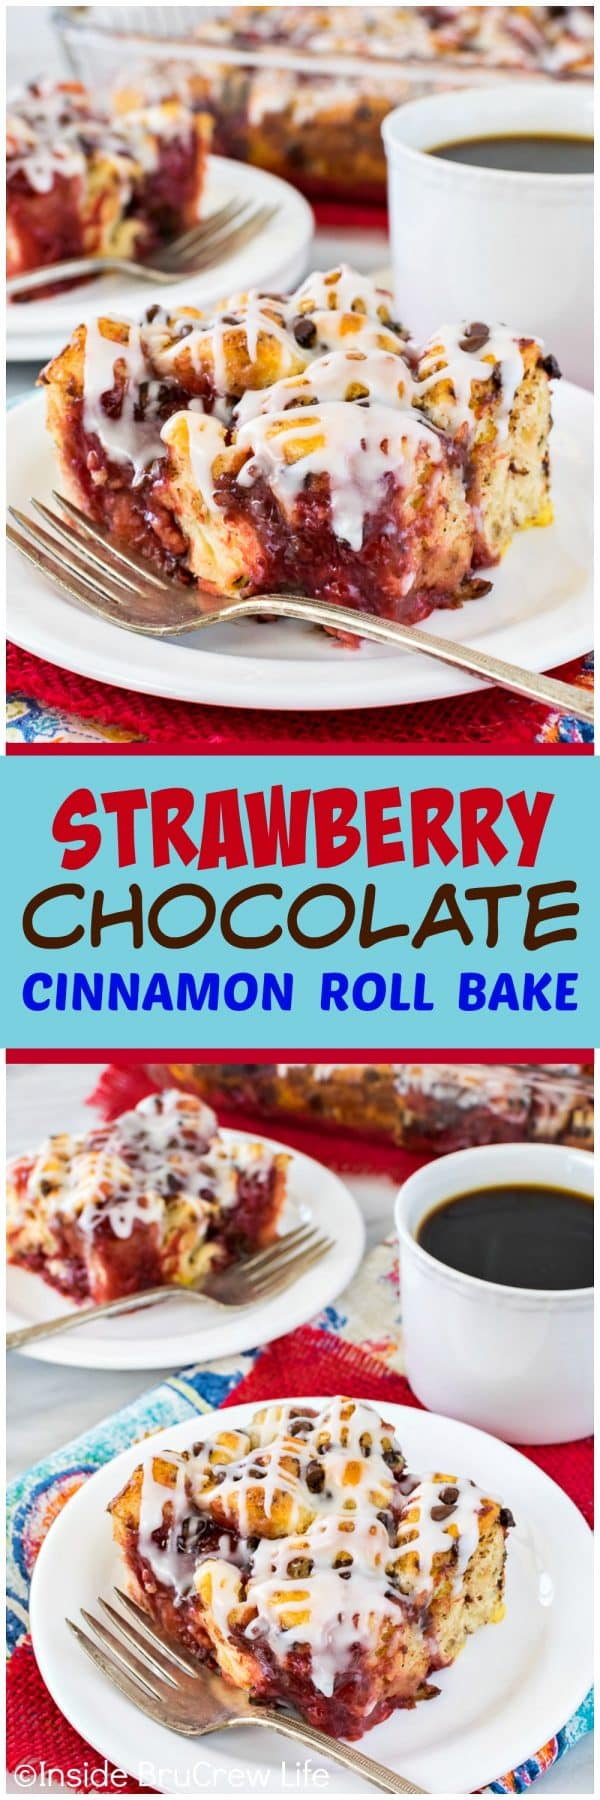 Strawberry Chocolate Cinnamon Roll Bake - this easy cinnamon roll bake is loaded with strawberry pie filling and chocolate chips. Easy breakfast or brunch recipe!